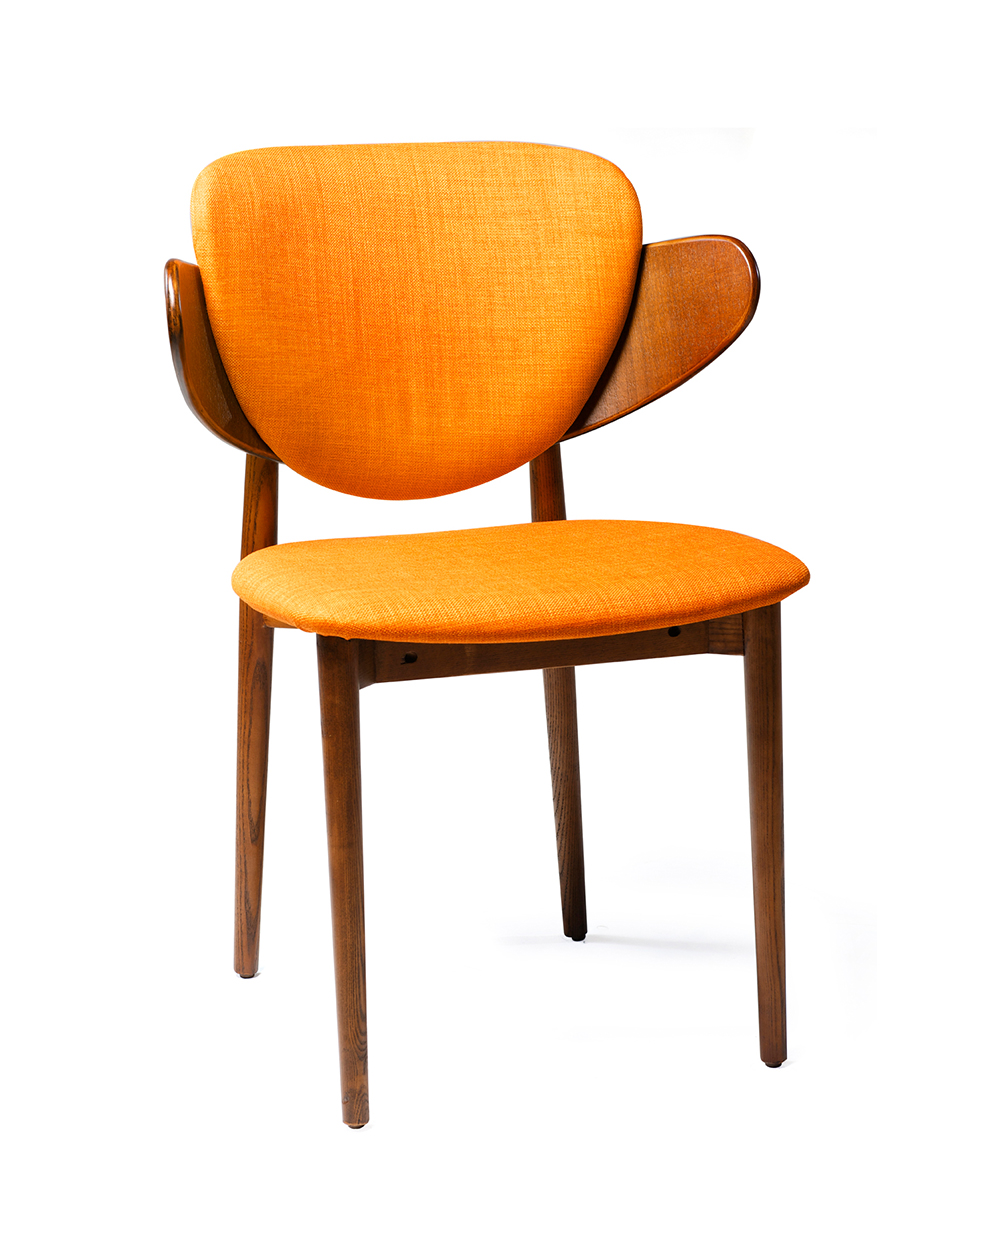 COSTA_CHAIR_orange_fabric_front